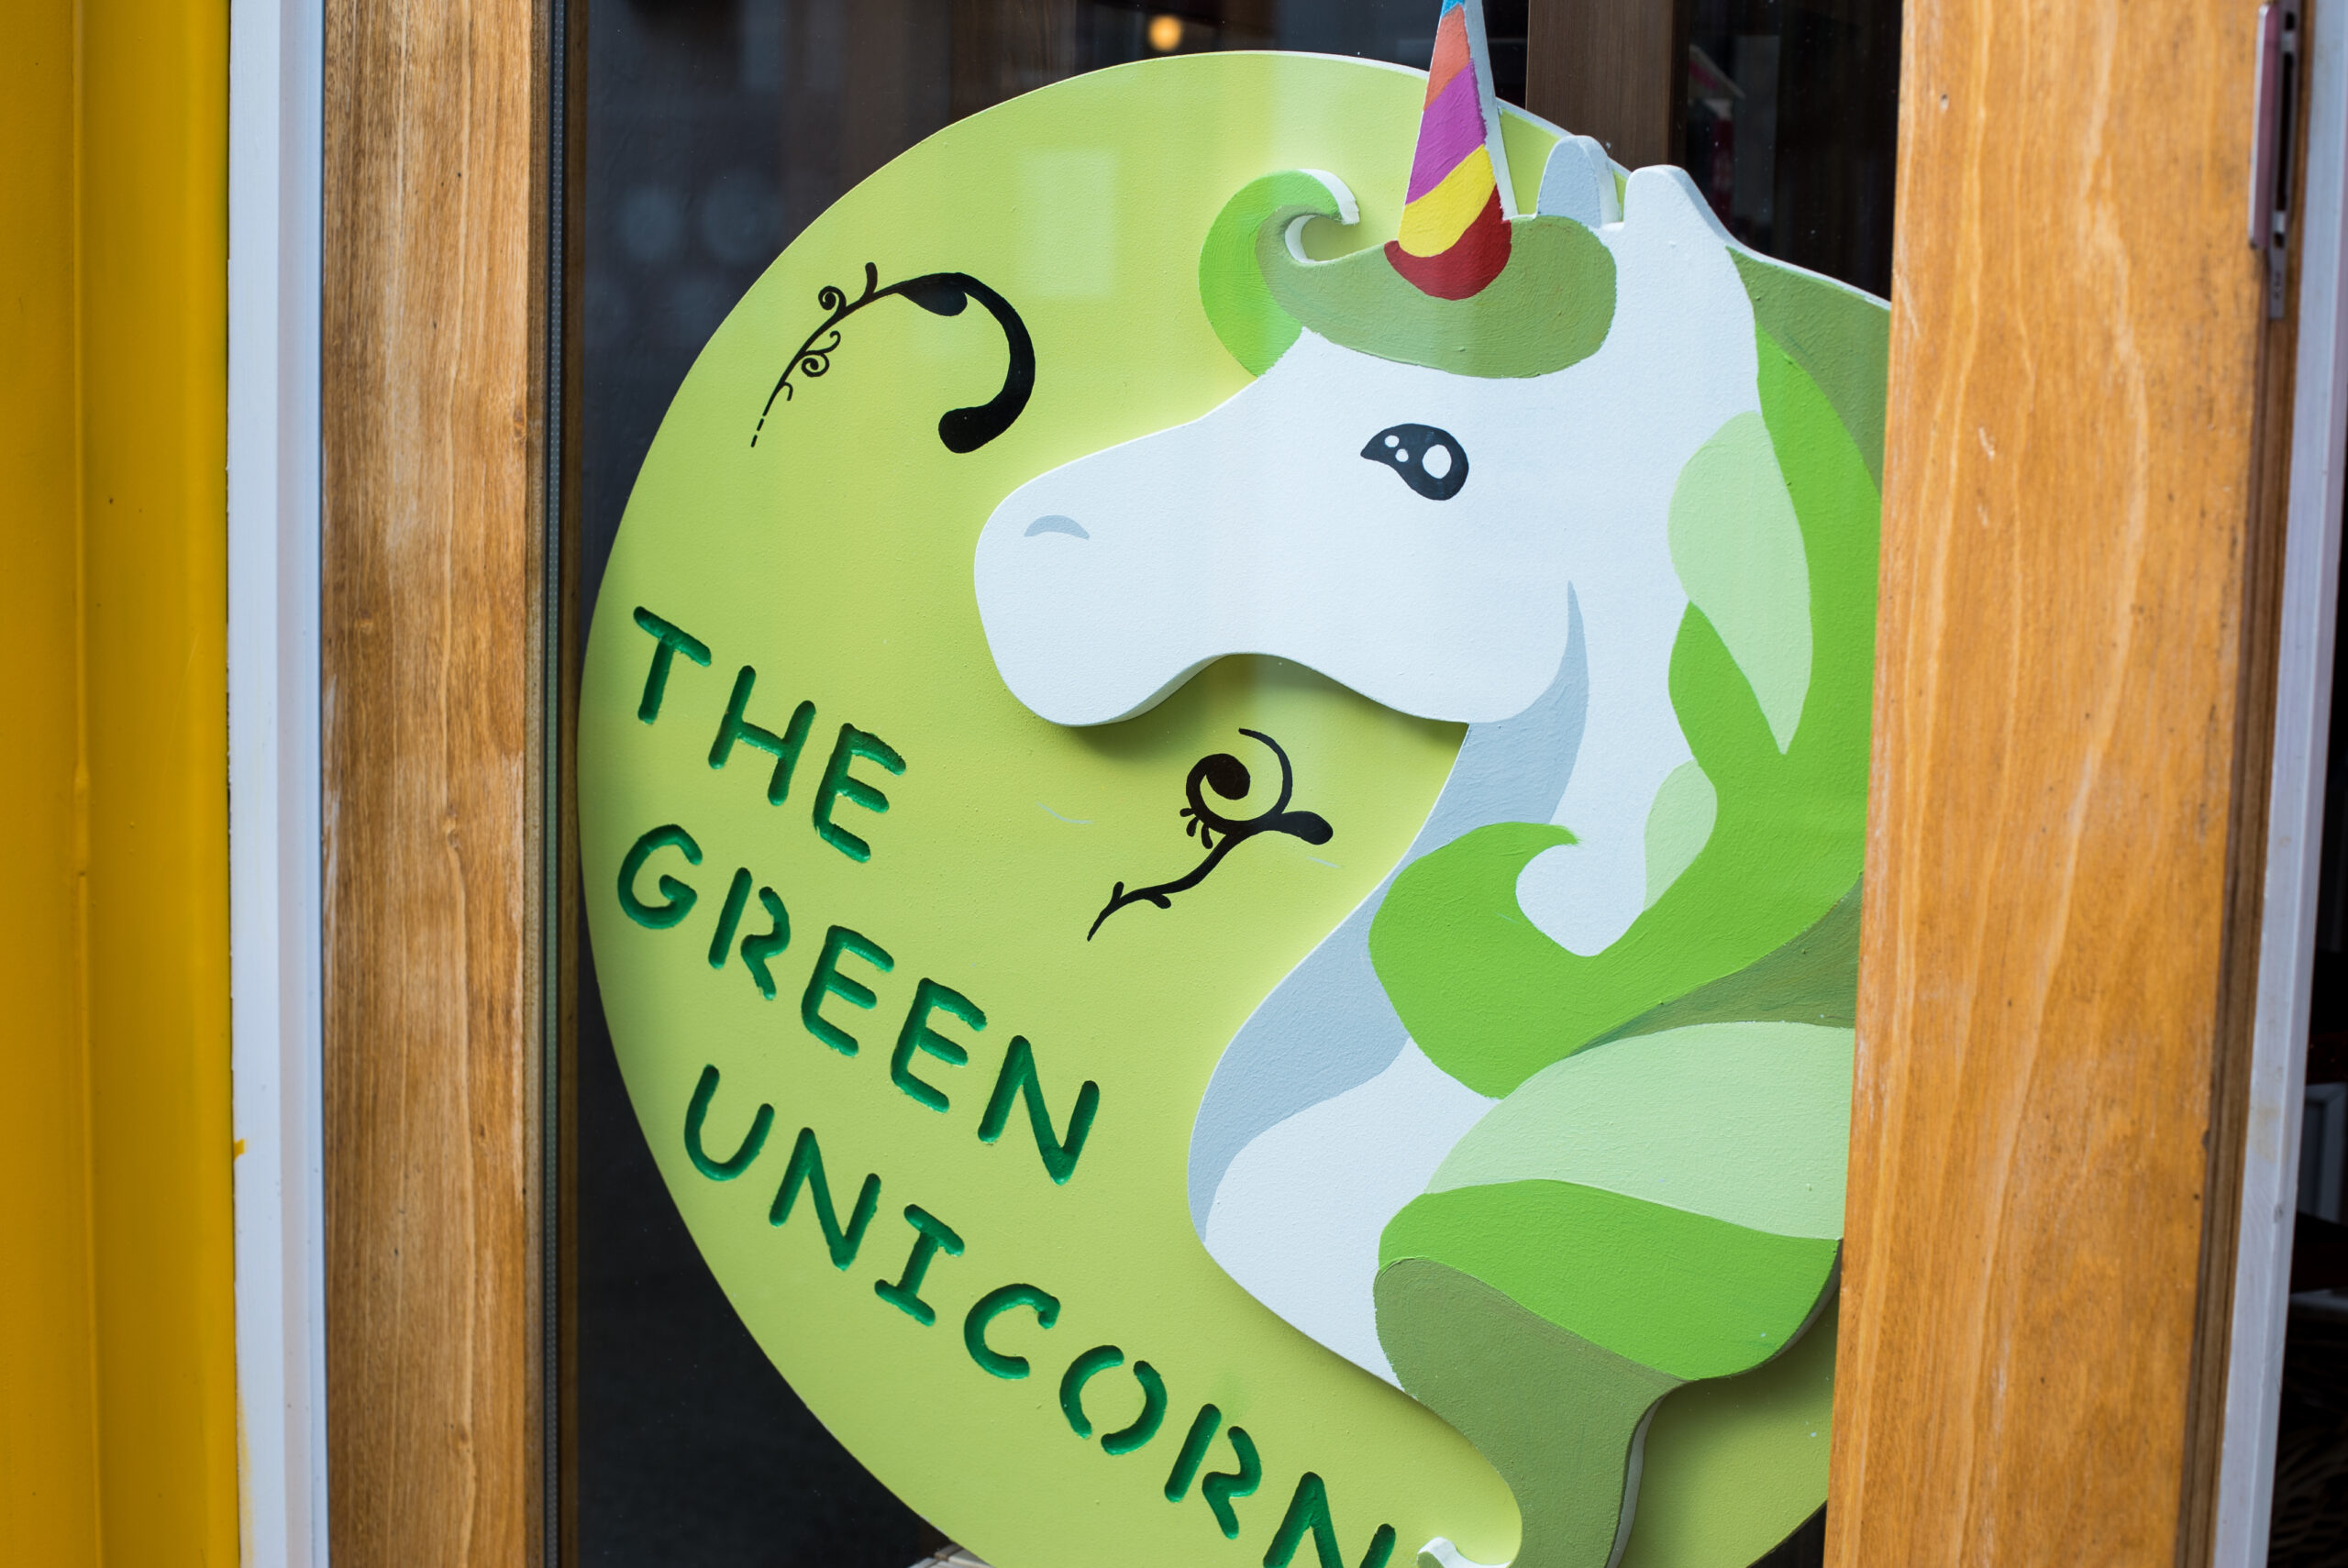 The Green Unicorn Vegan Store